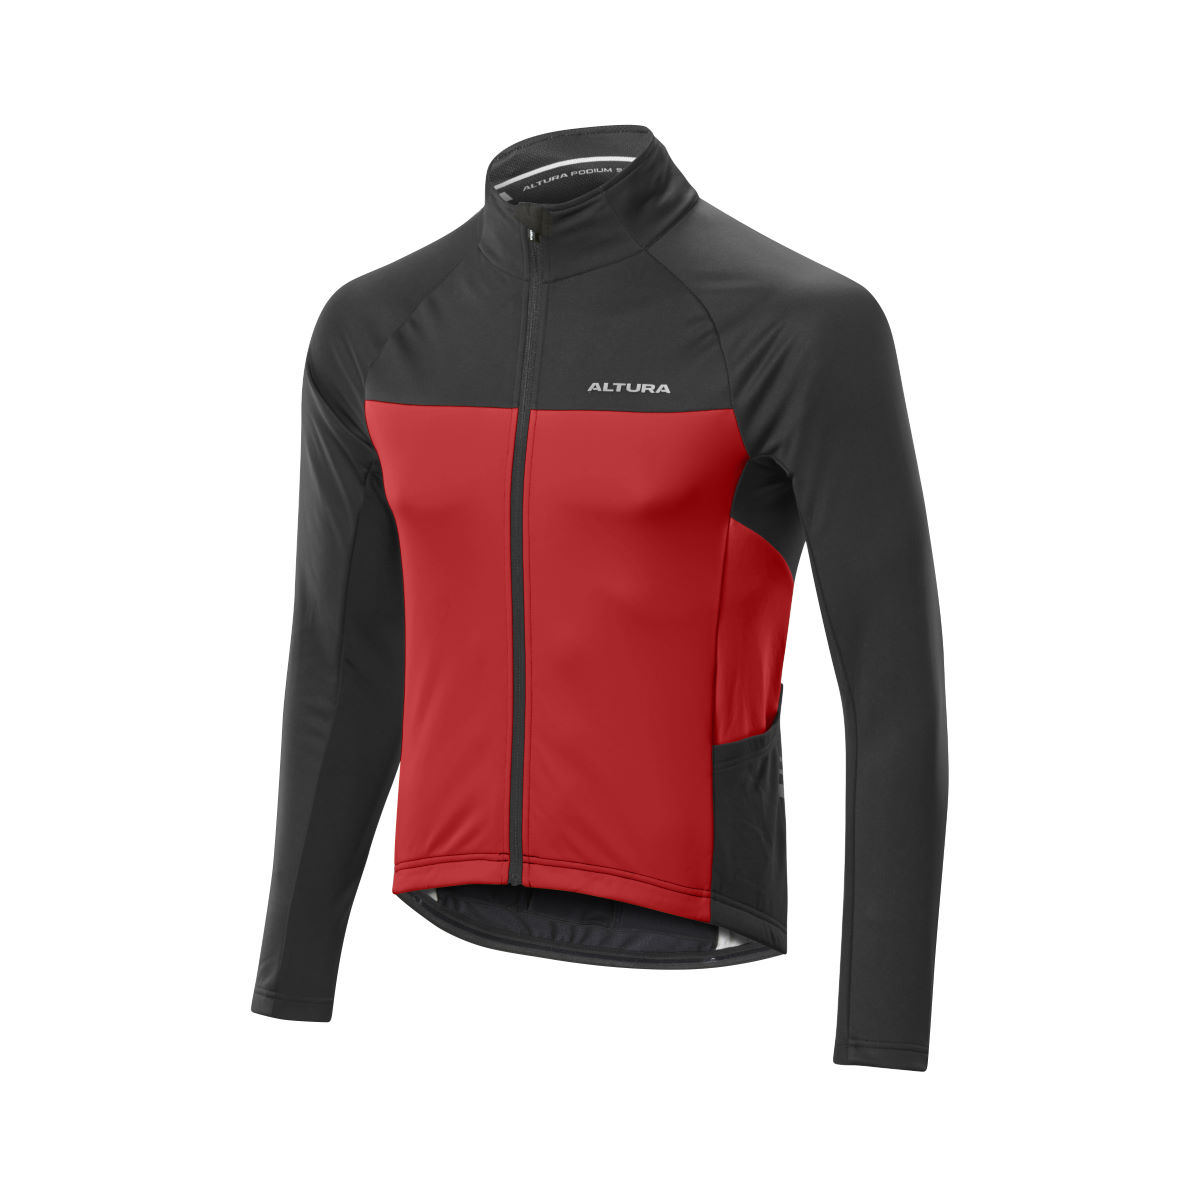 Veste Altura Podium Elite Thermo Shield - XXL Rouge/Noir Vestes